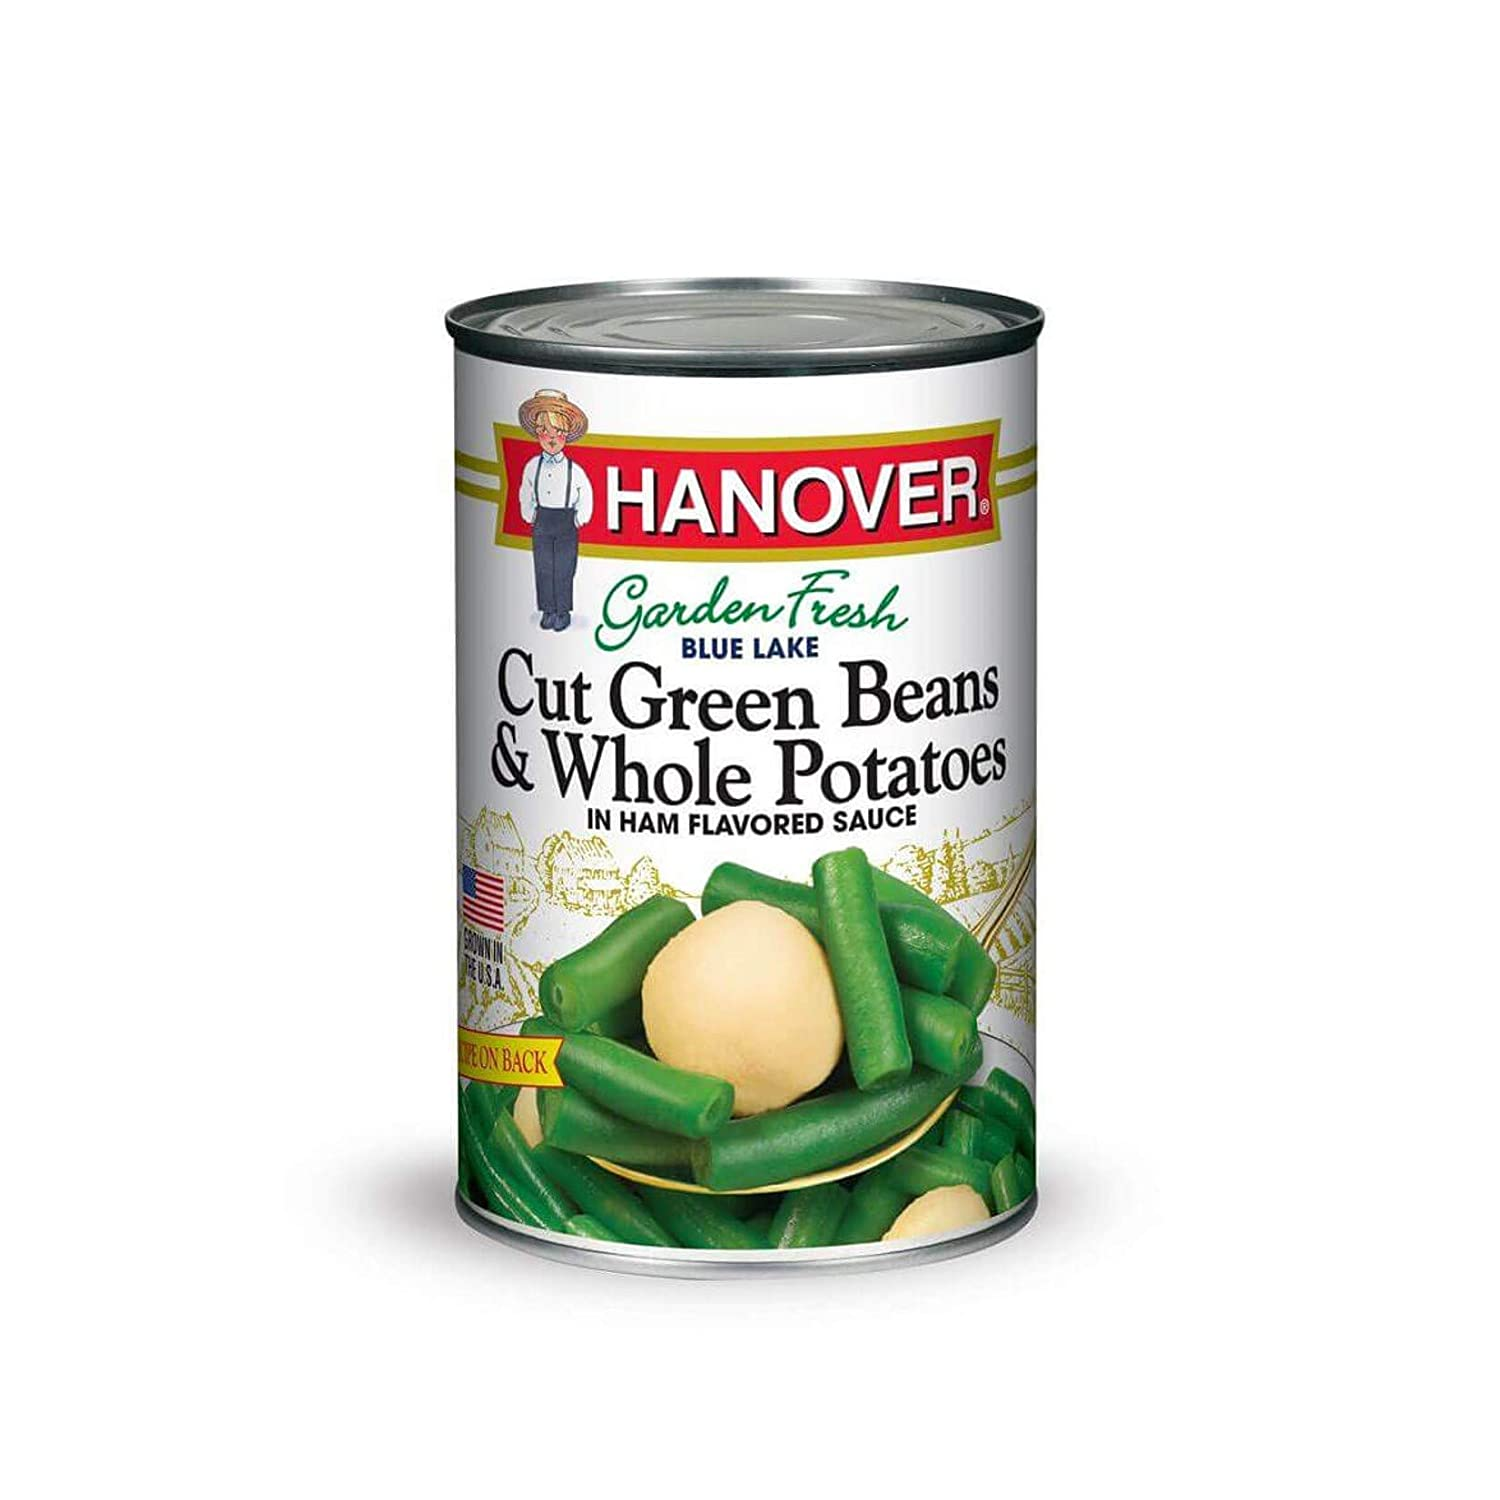 Hanover Beans and Potatoes Cut Green and Whole In Ham Flavored Sauce, 39 oz